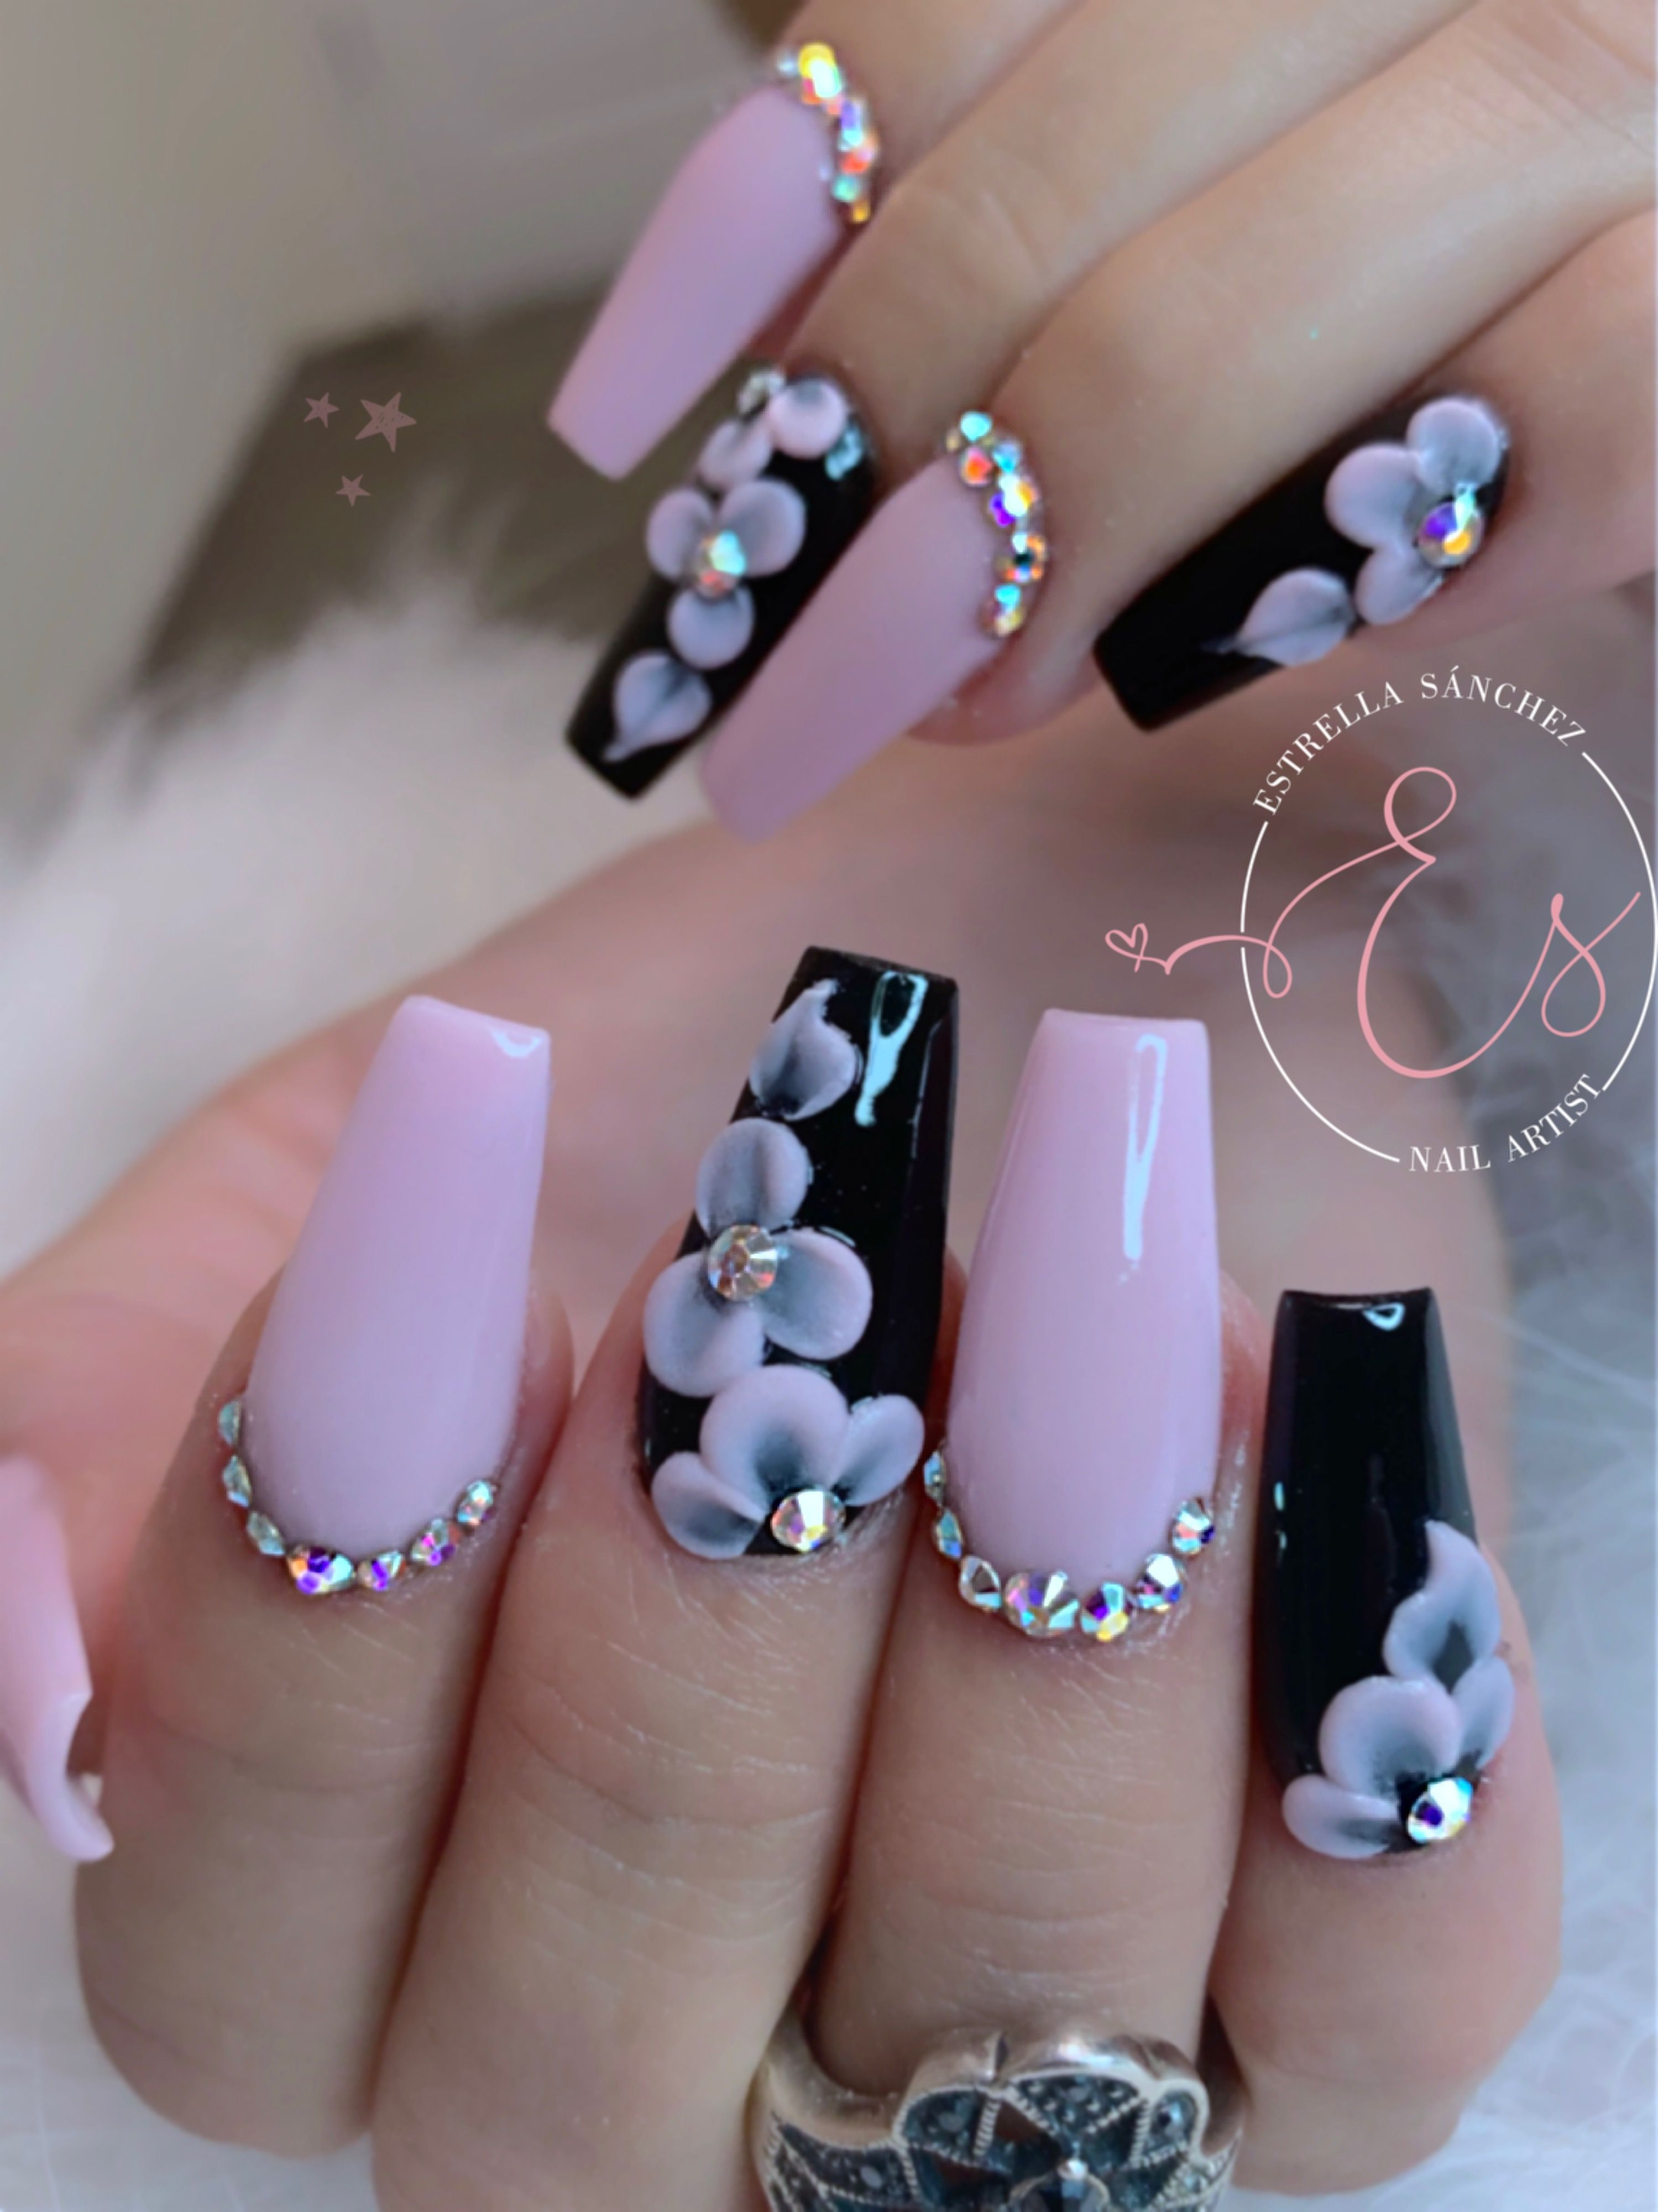 Pin By Nmp Makeup On Unas Pretty Acrylic Nails Studded Nails Fabulous Nails